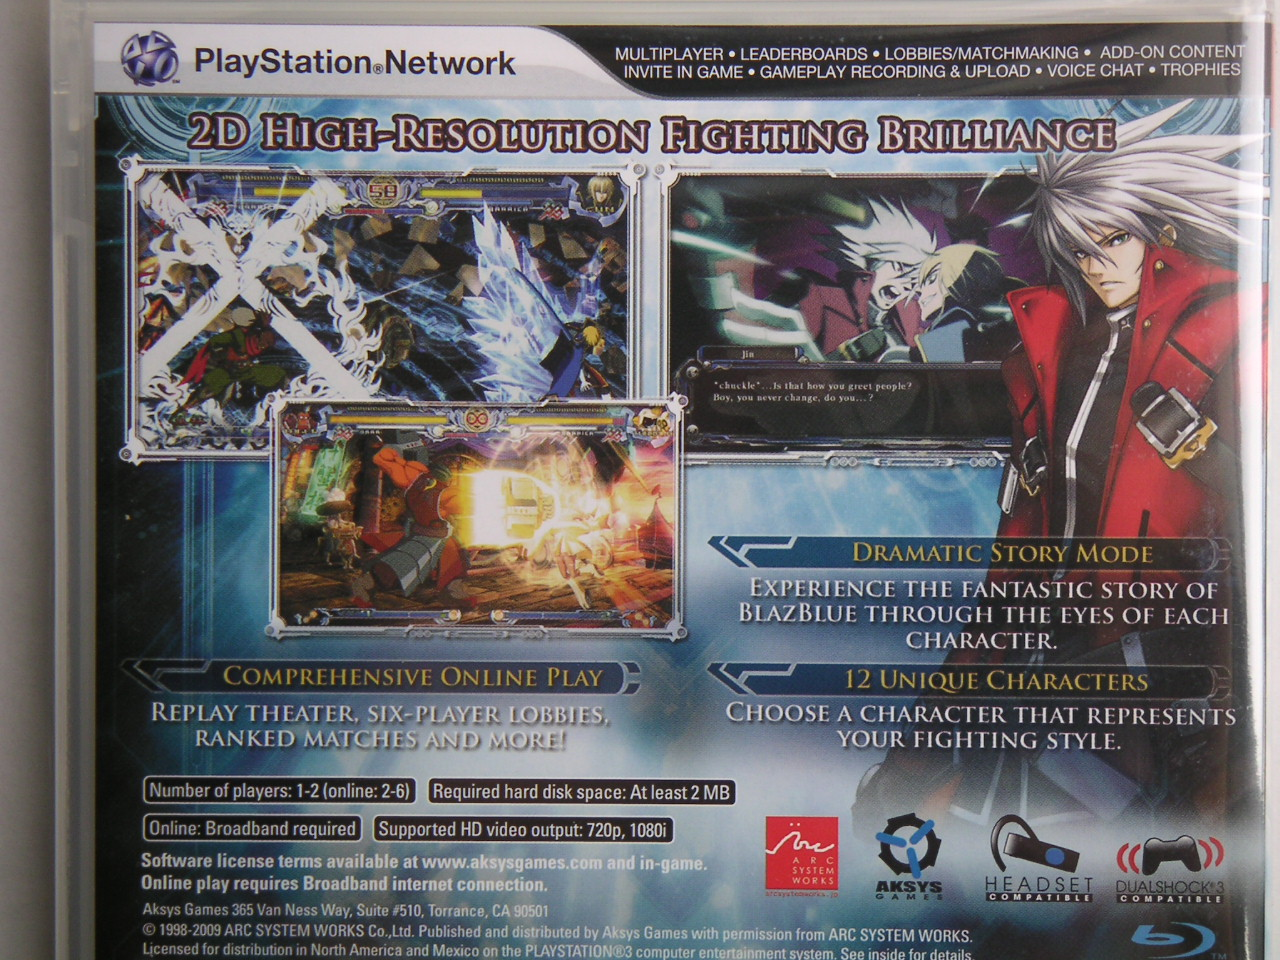 blazblue-limited-esition-08.jpg